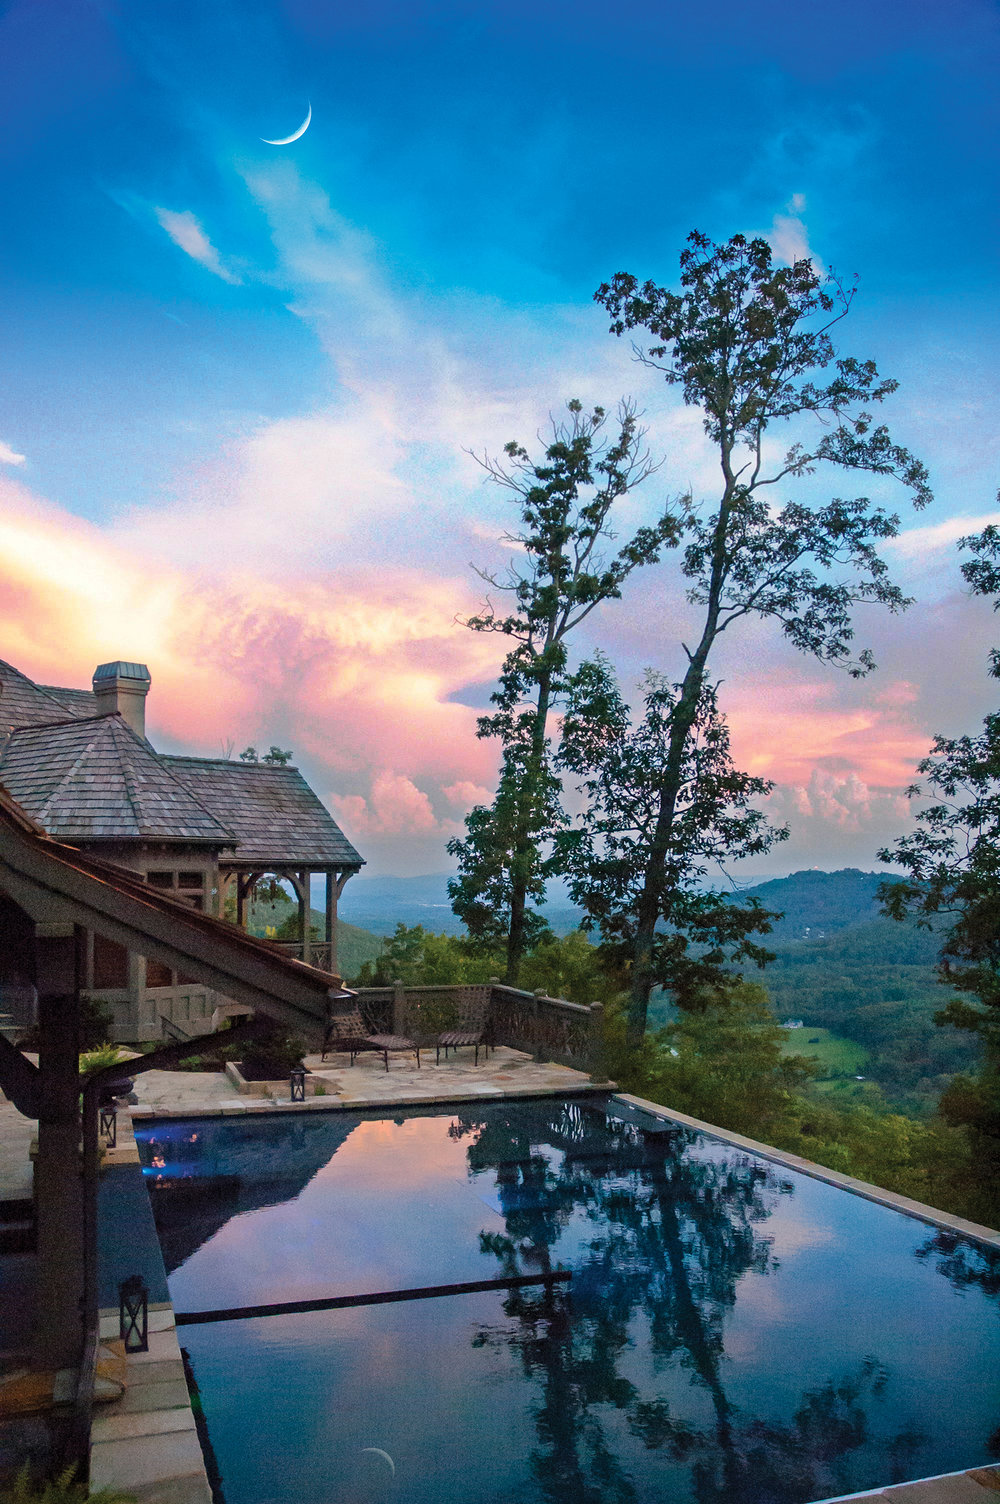 Sunset and moonrise from the Cloud Pool are simply amazing with mountain views south and west... unmatched by any other location.